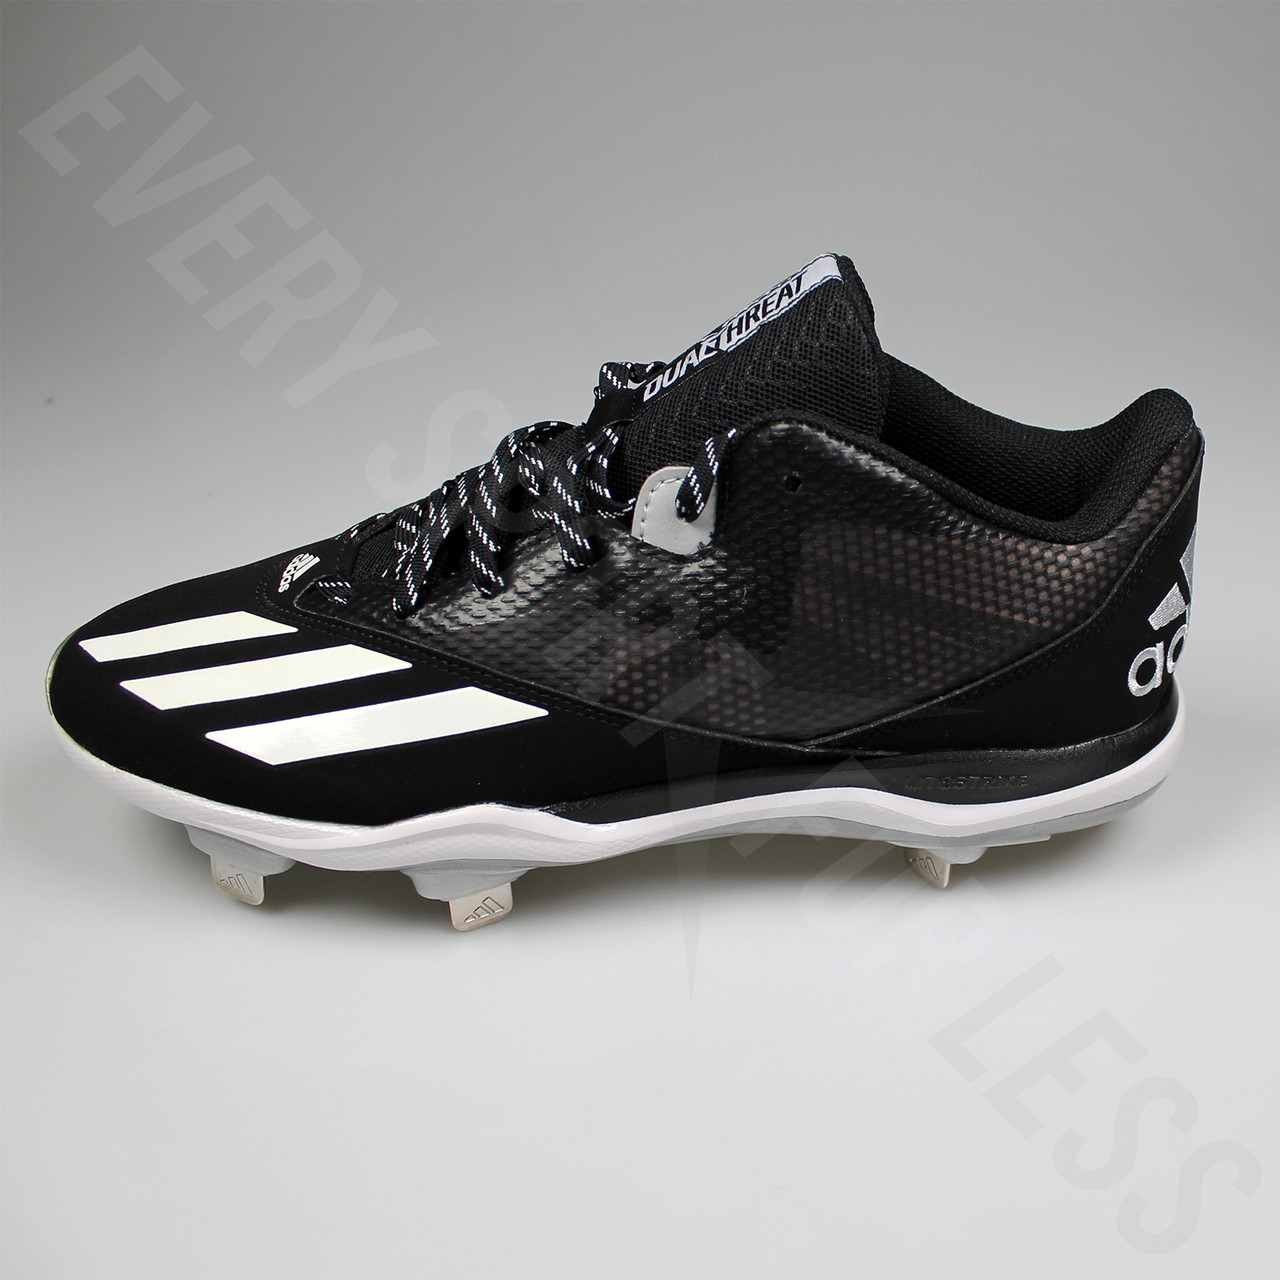 hot sale online 40a60 7eb14 ... Adidas Dual Threat 2 Mens Baseball Cleats F37751 - Black, White, Silver  ...